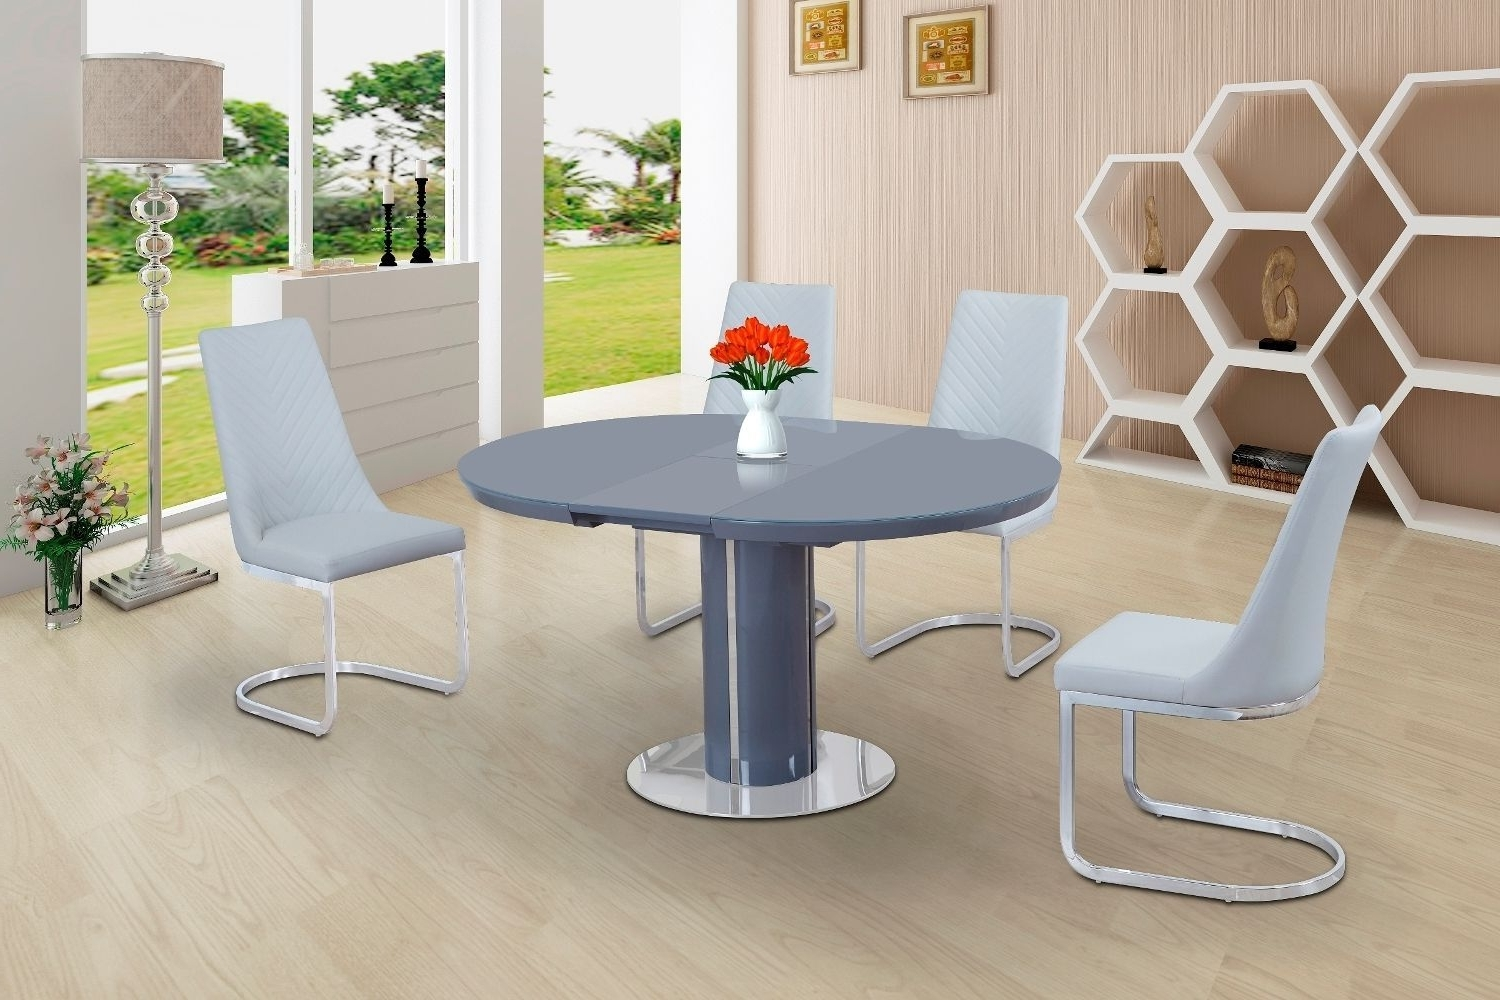 2017 Eclipse Round Oval Gloss & Glass Extending 110 To 145 Cm Dining With Extendable Round Dining Tables (View 1 of 25)